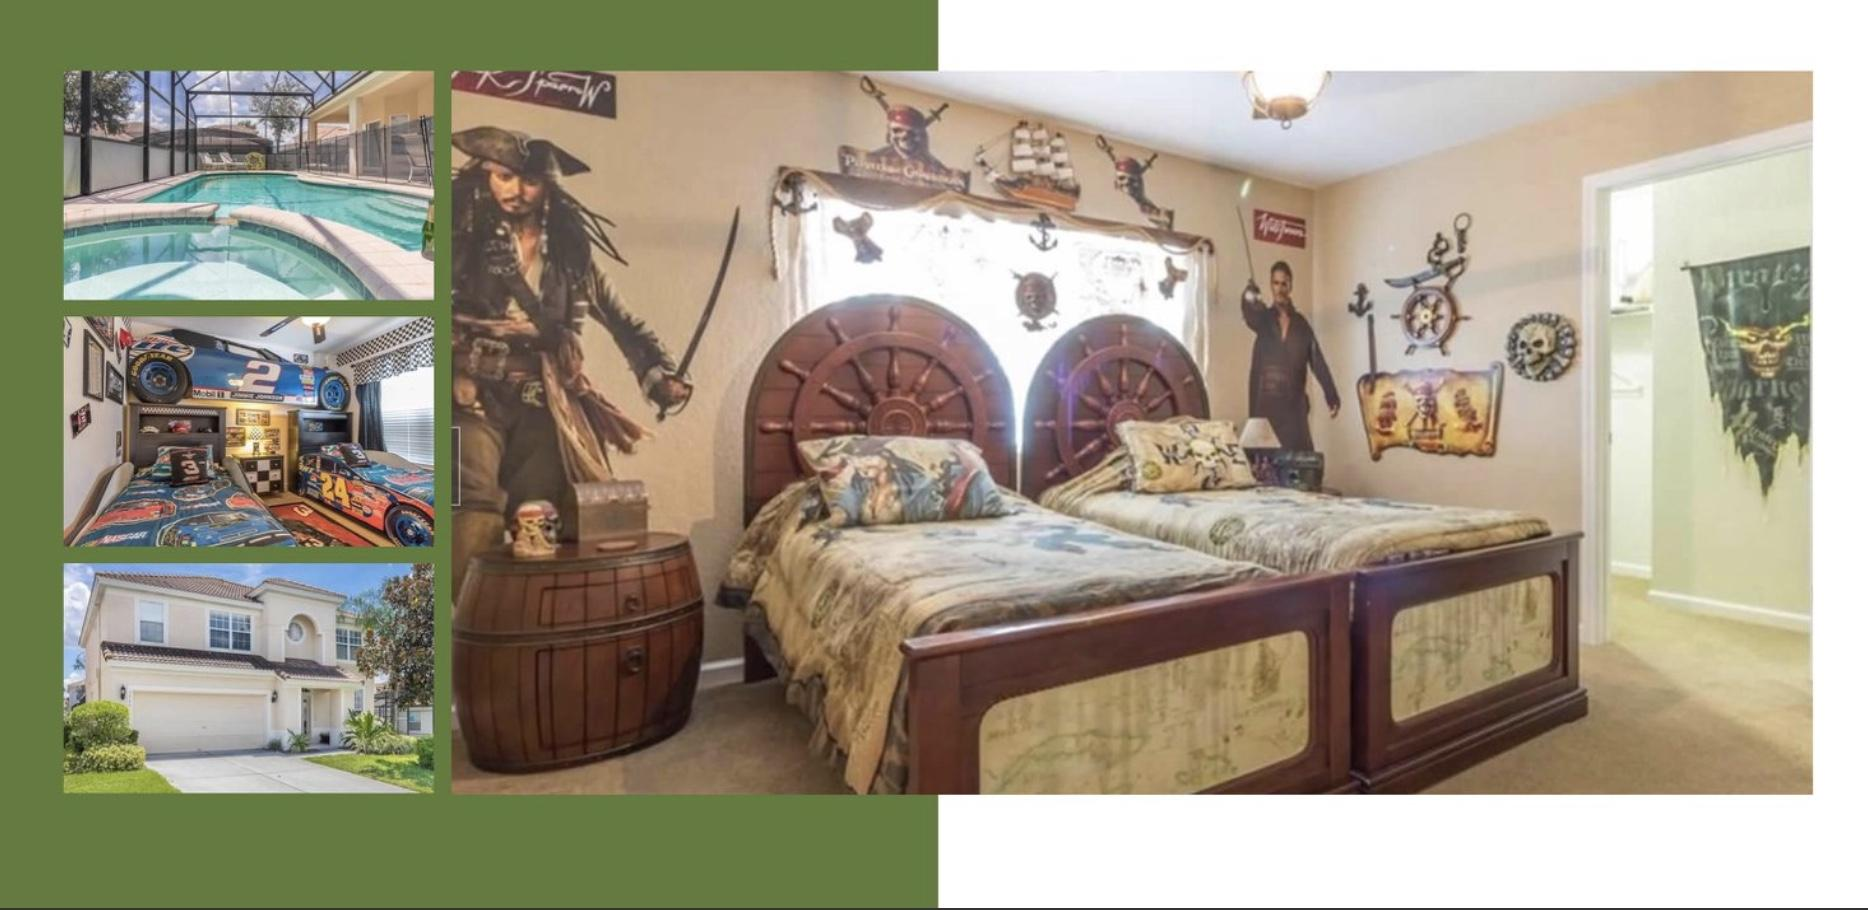 Everyone loves a Pirate�s life